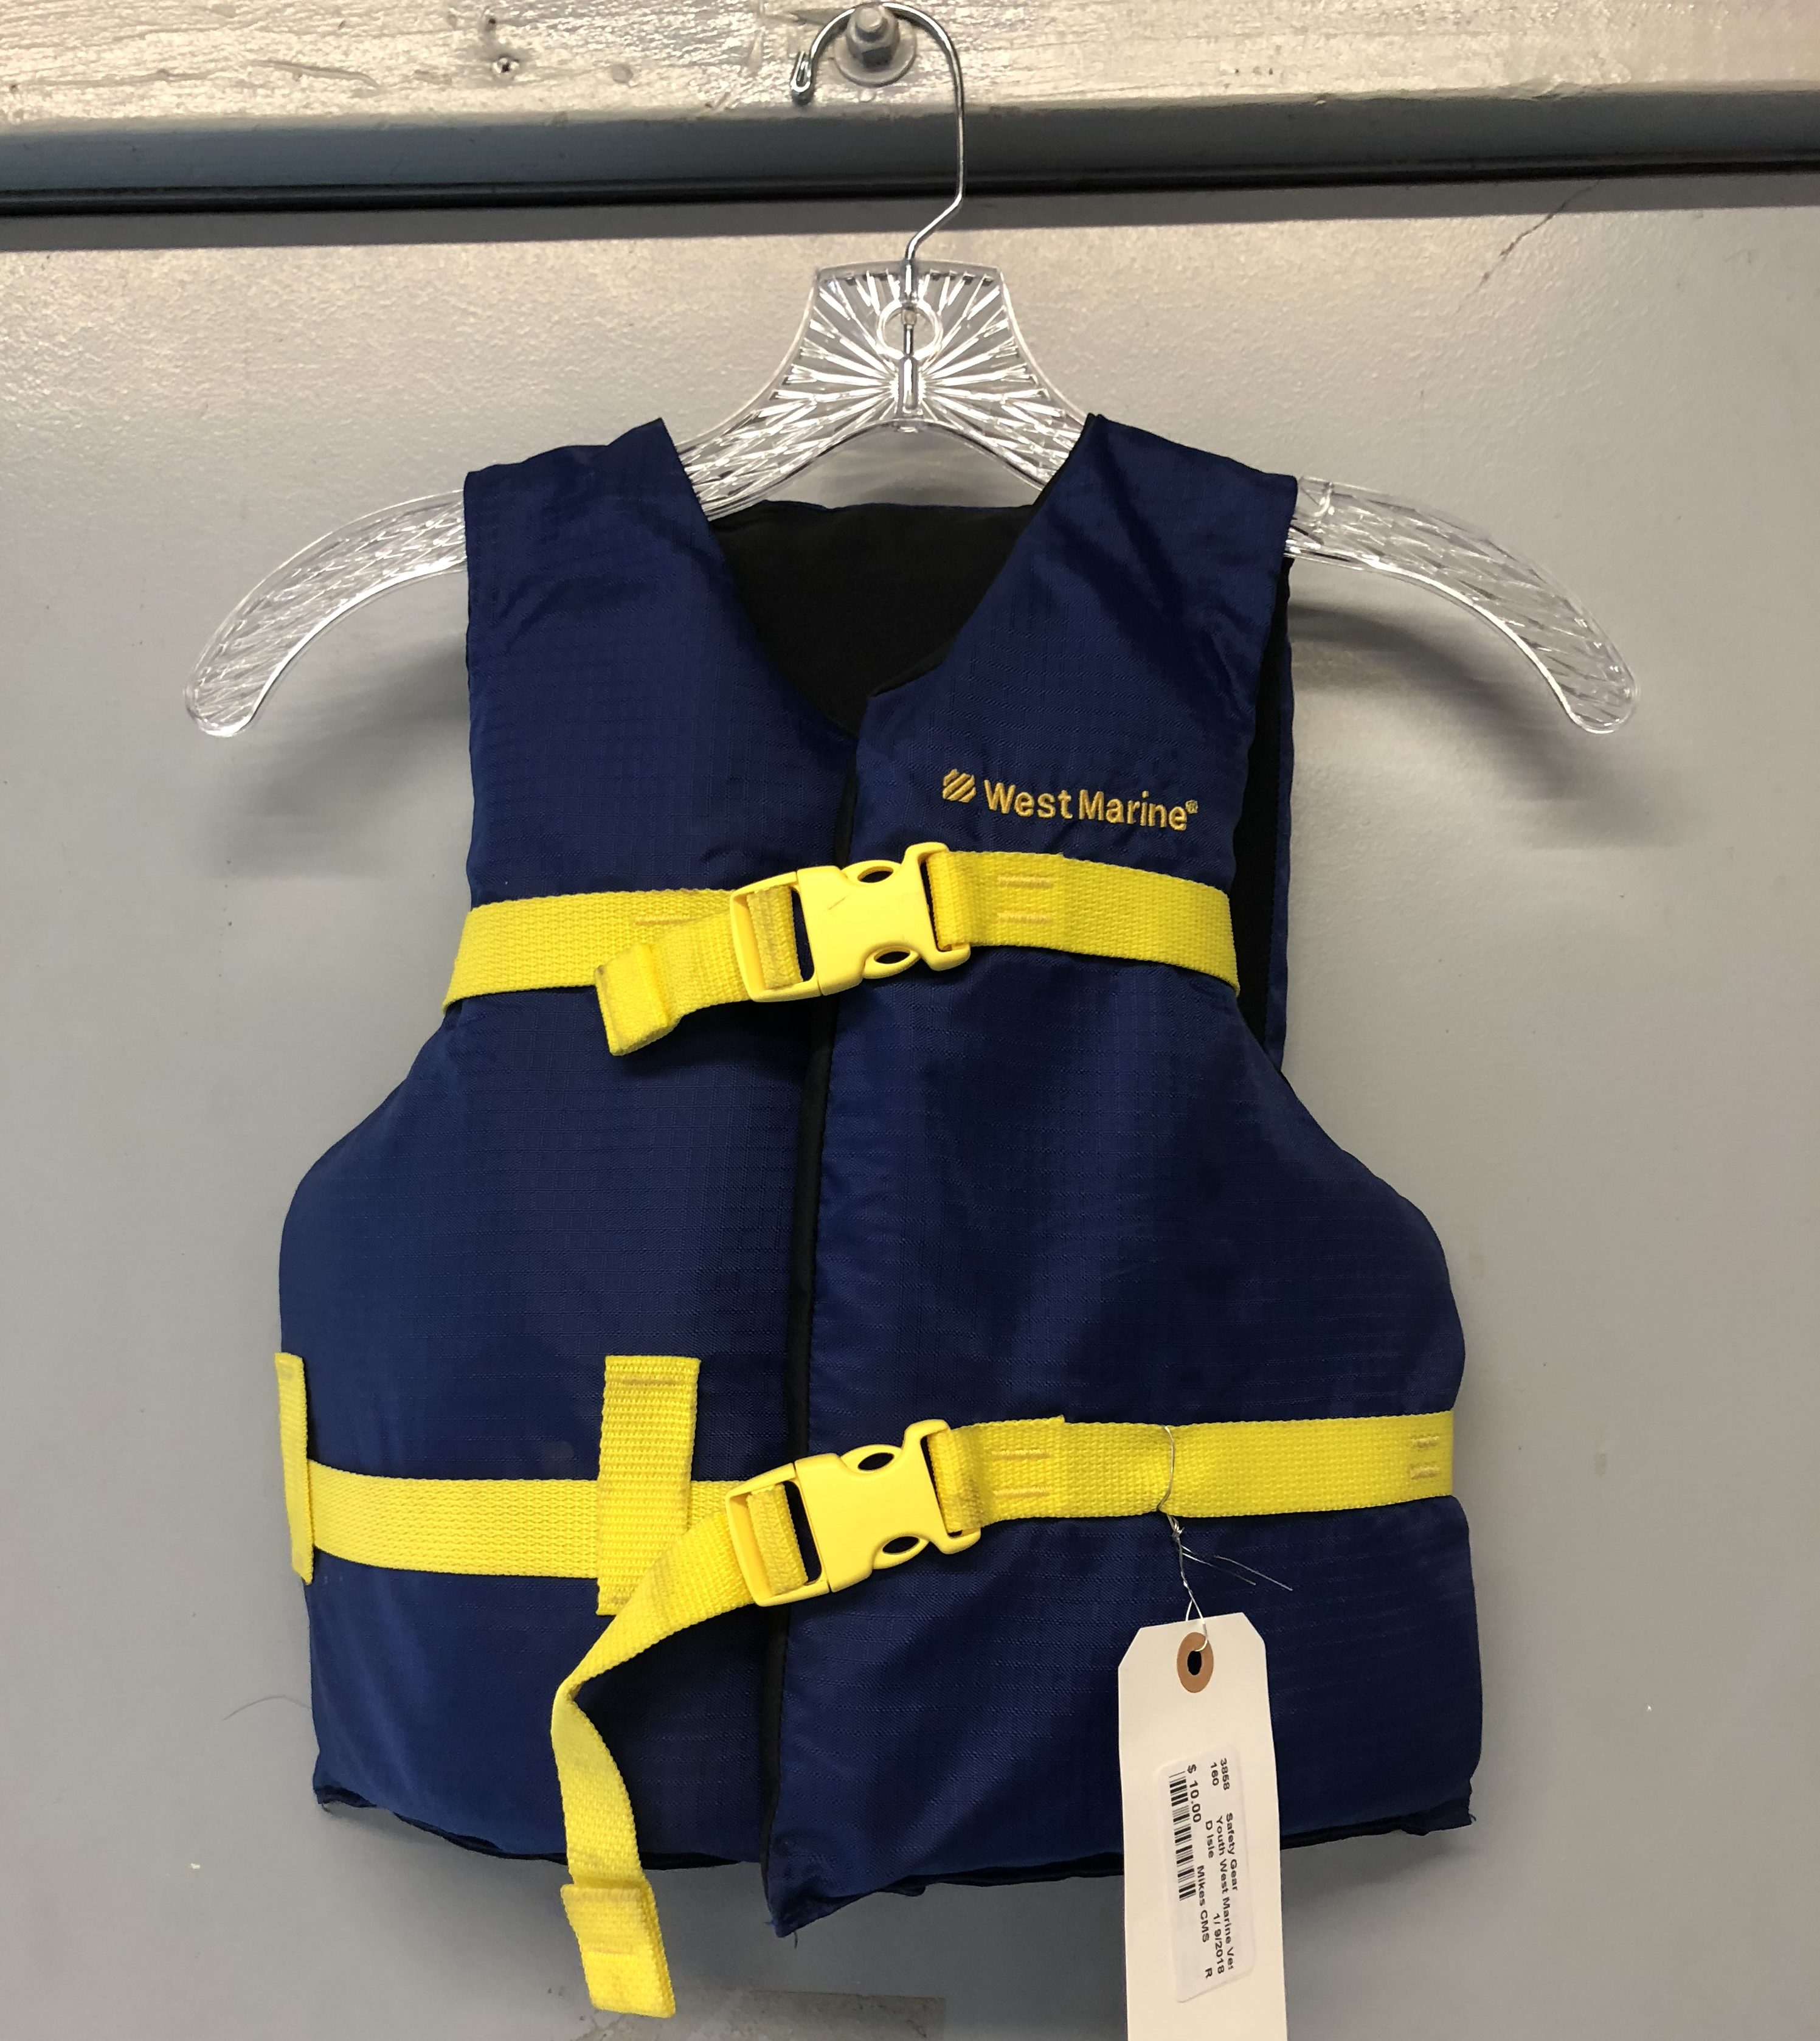 west marine chairs swing chair outdoor furniture youth life vest